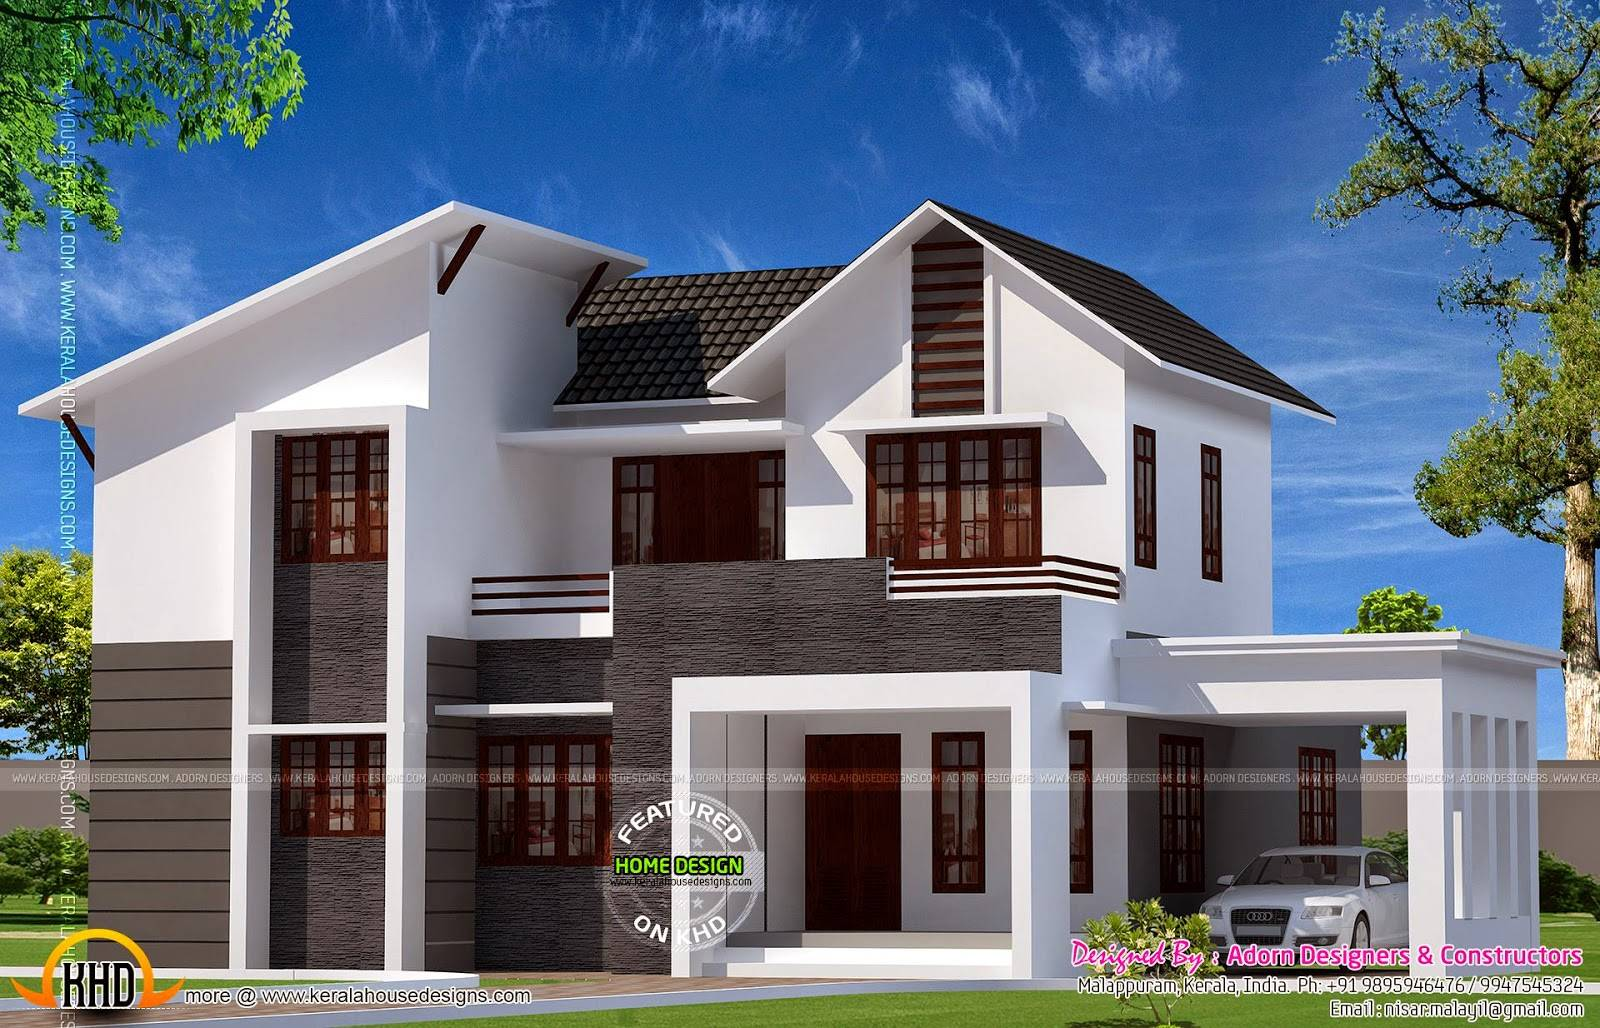 Bhk Sloped Roof House Kerala Home Design Floor Plans Home Plans Blueprints 47266